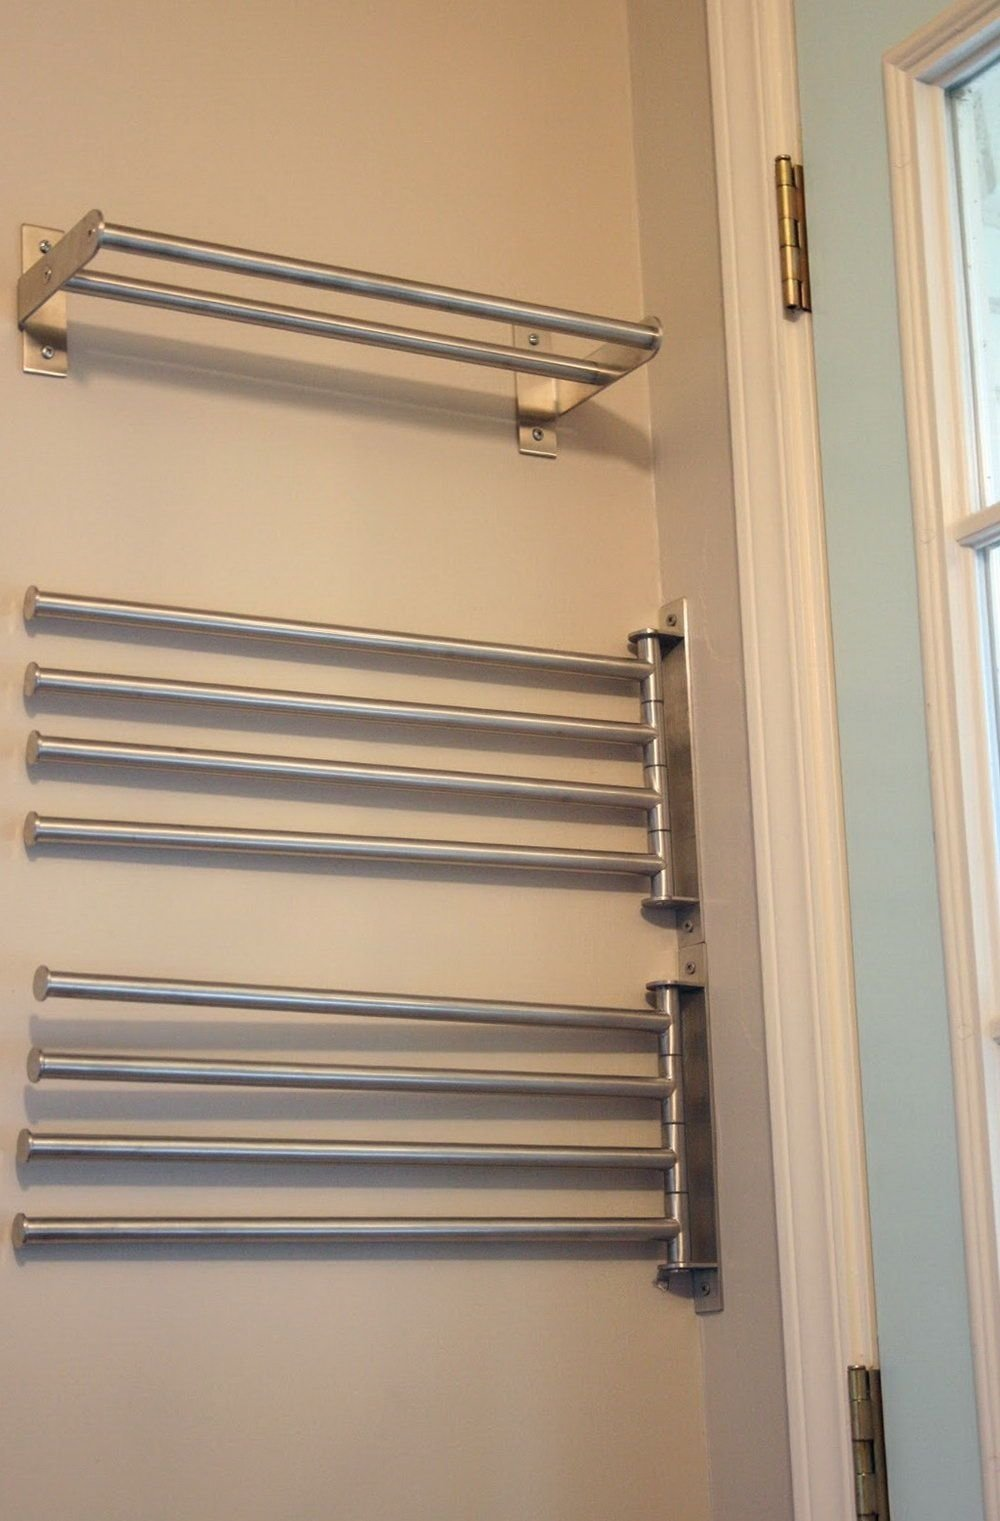 laundry room hanging drying racks | drying racks | pinterest